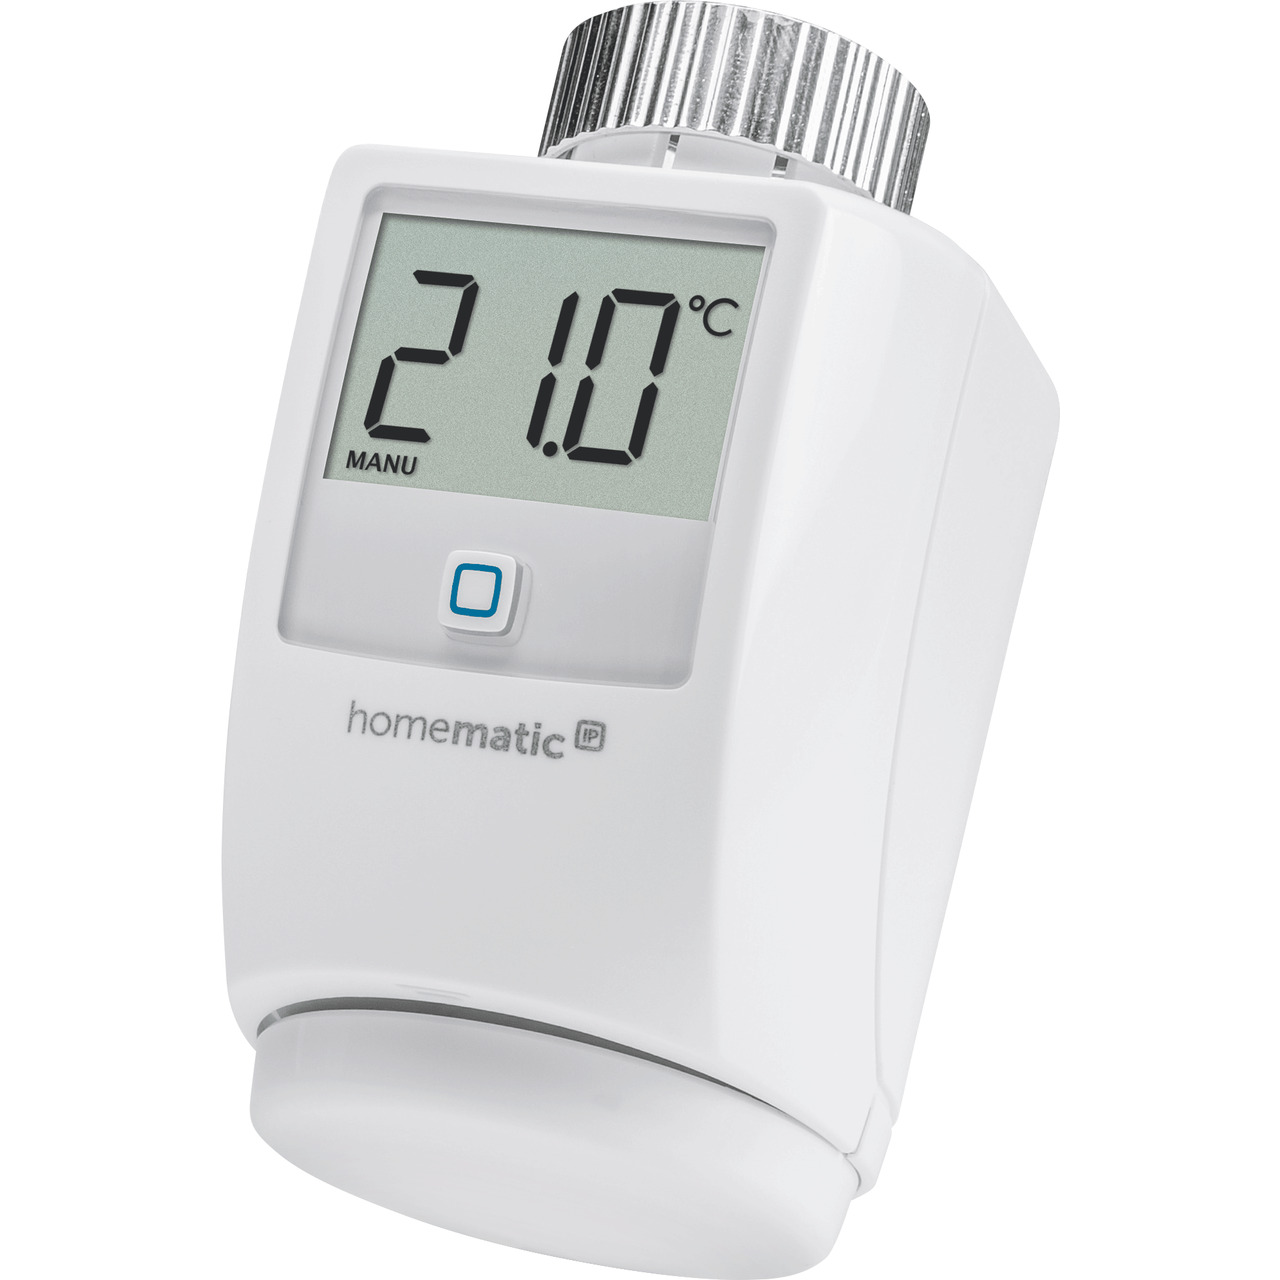 ELV Homematic IP Komplettbausatz Heizkörperthermostat HmIP-eTRV-2- für Smart Home - Hausautomation